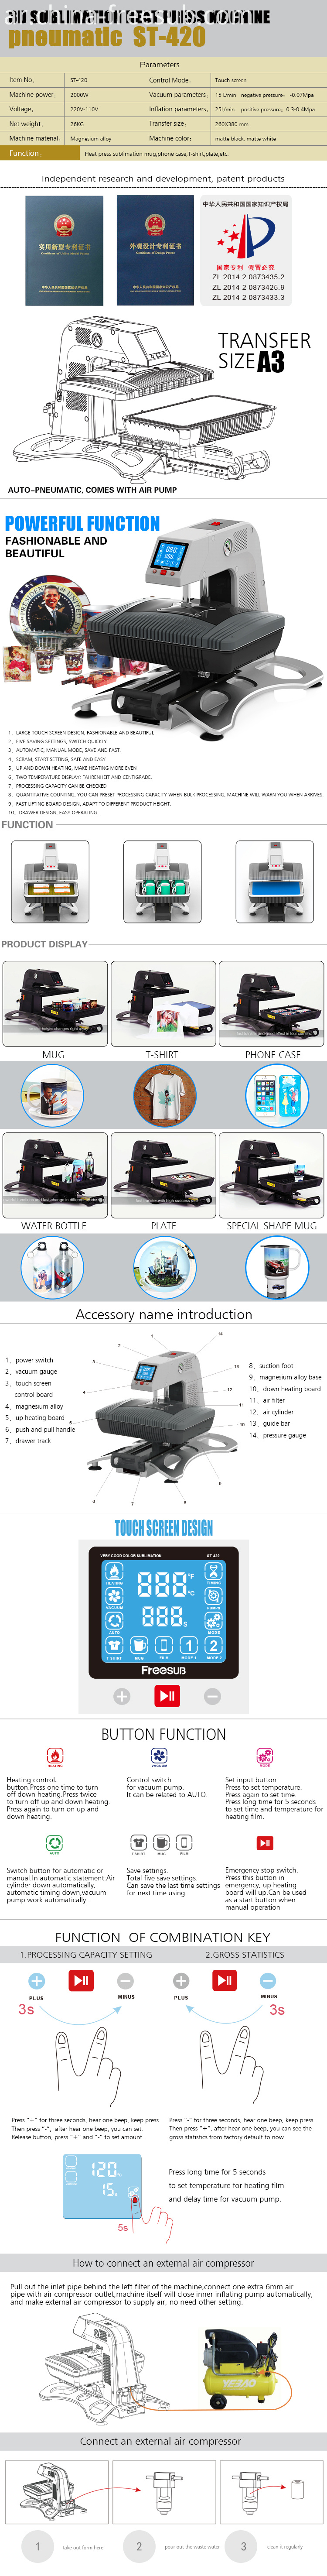 FREESUB Sublimation Custom Made T Shirts Machine